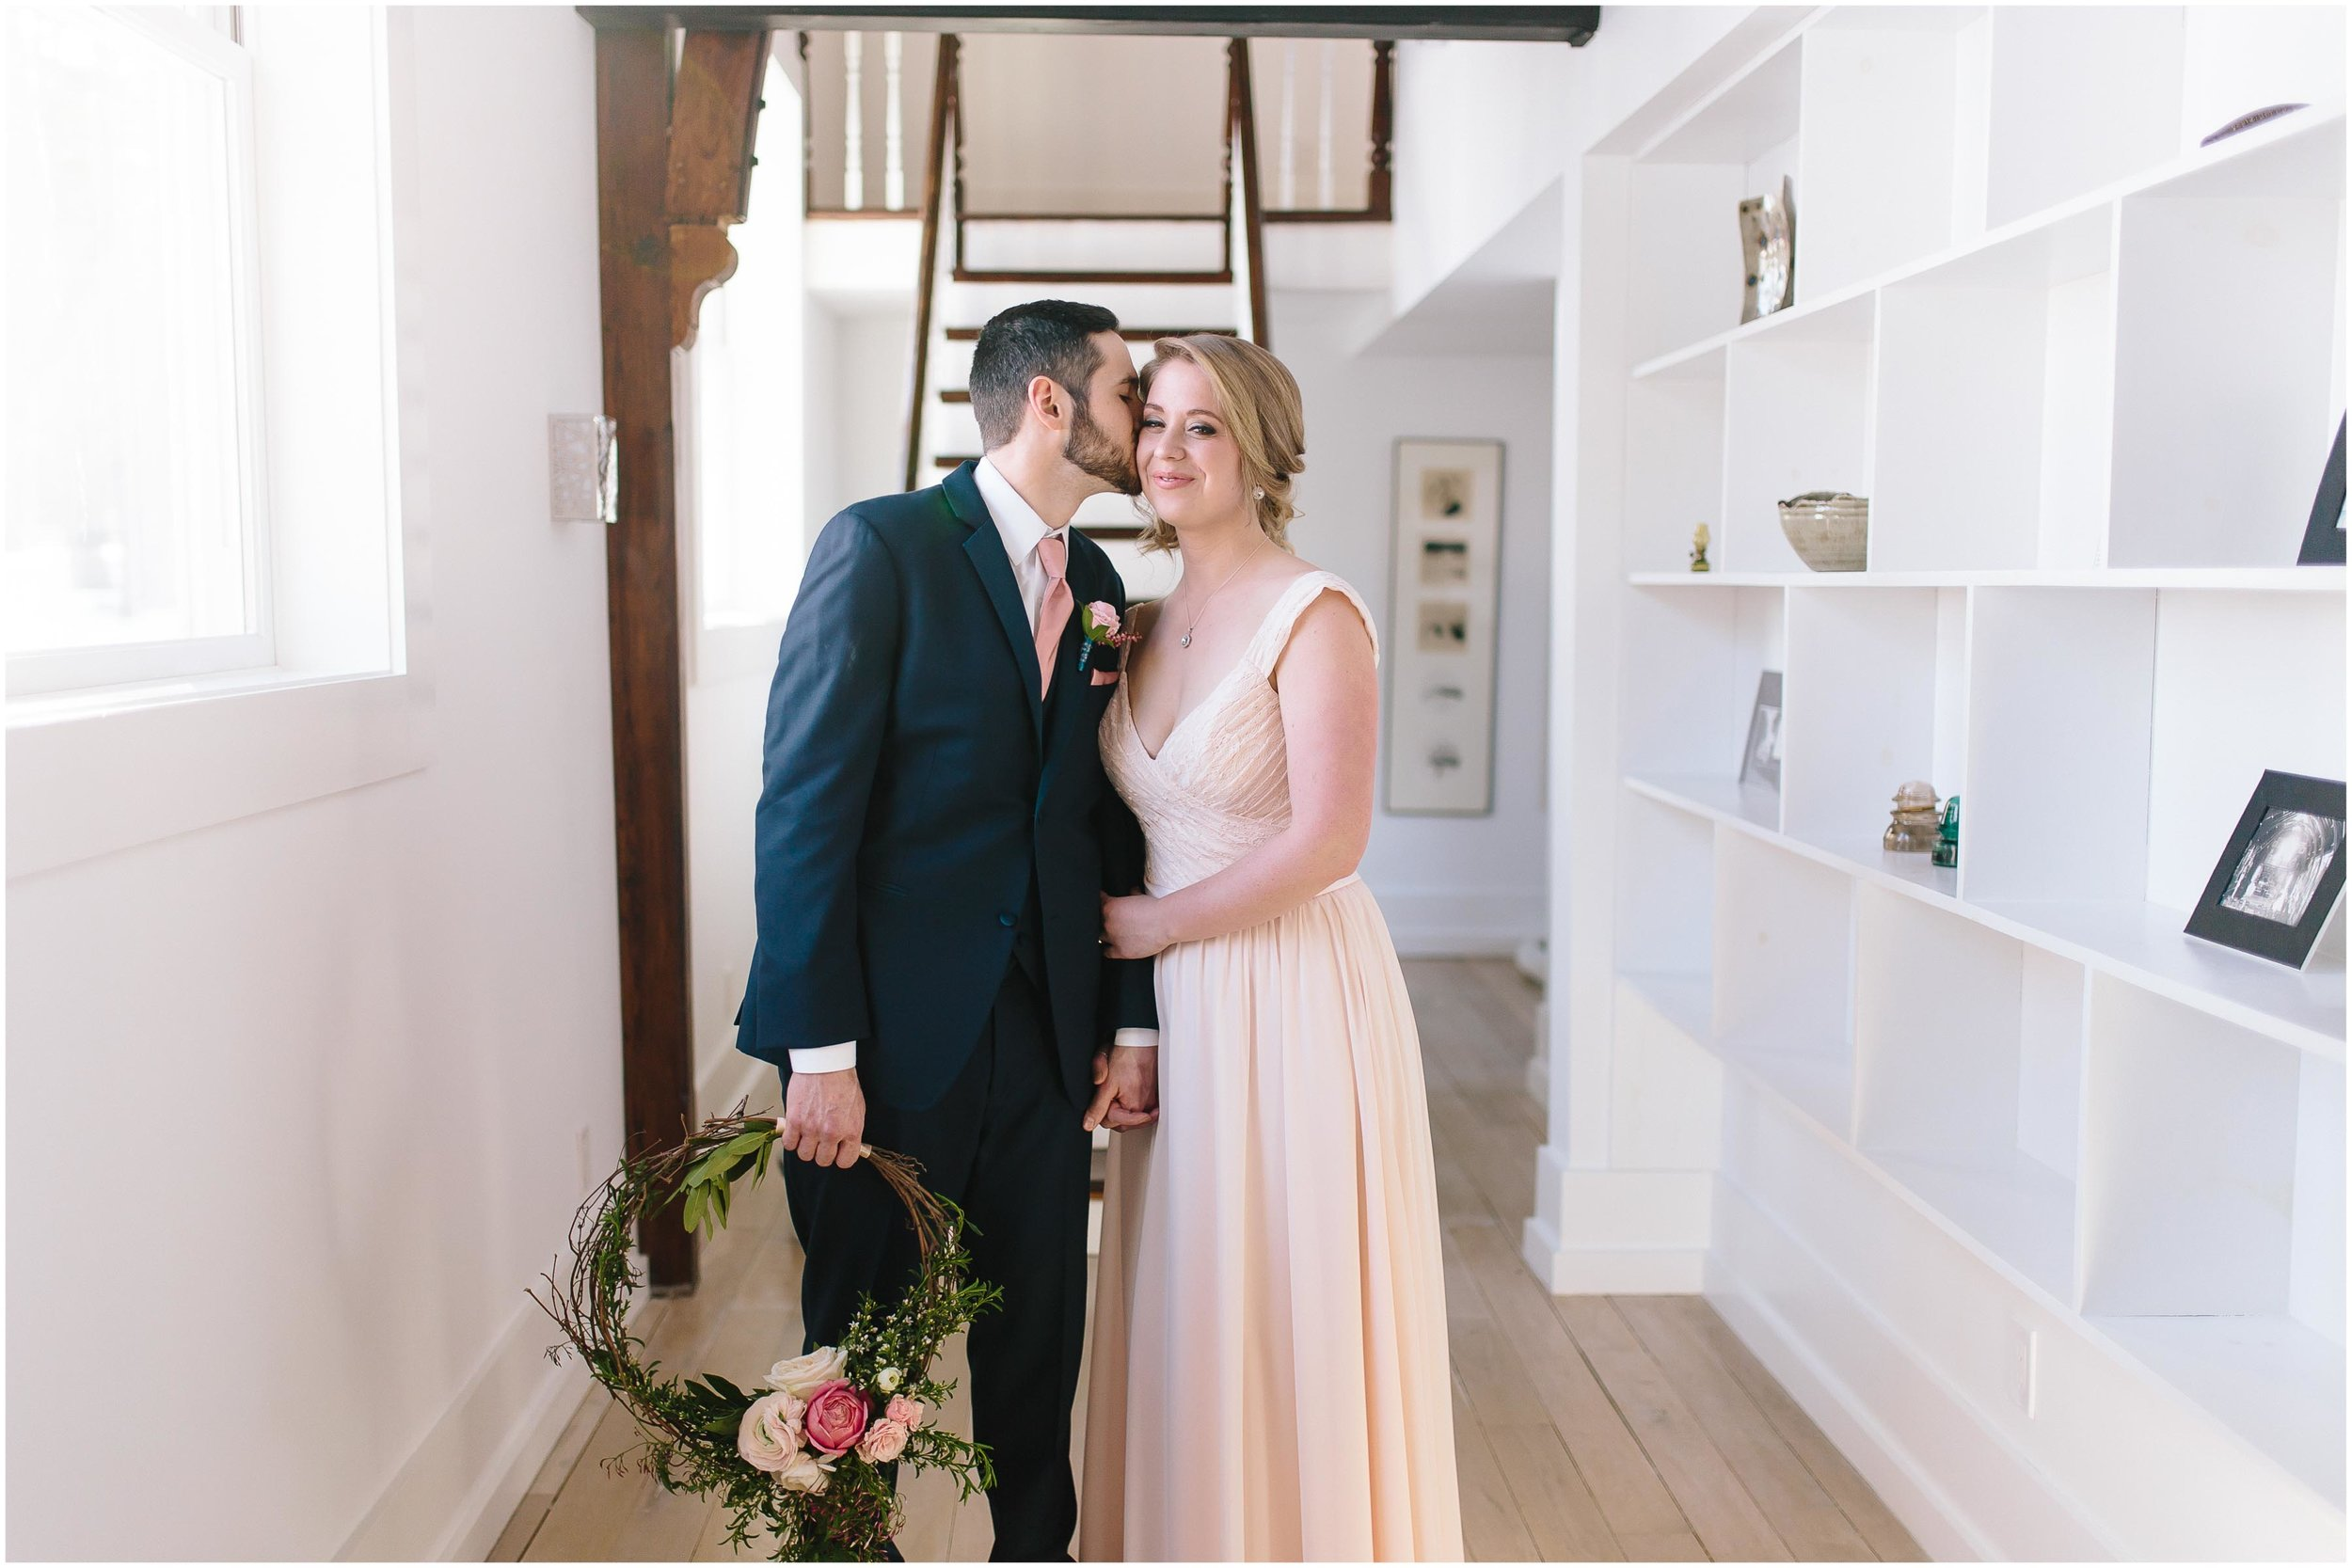 Intimate and romantic styled wedding photography in Lee, Massachusetts in the Berkshires - maid/matron of honor and best man